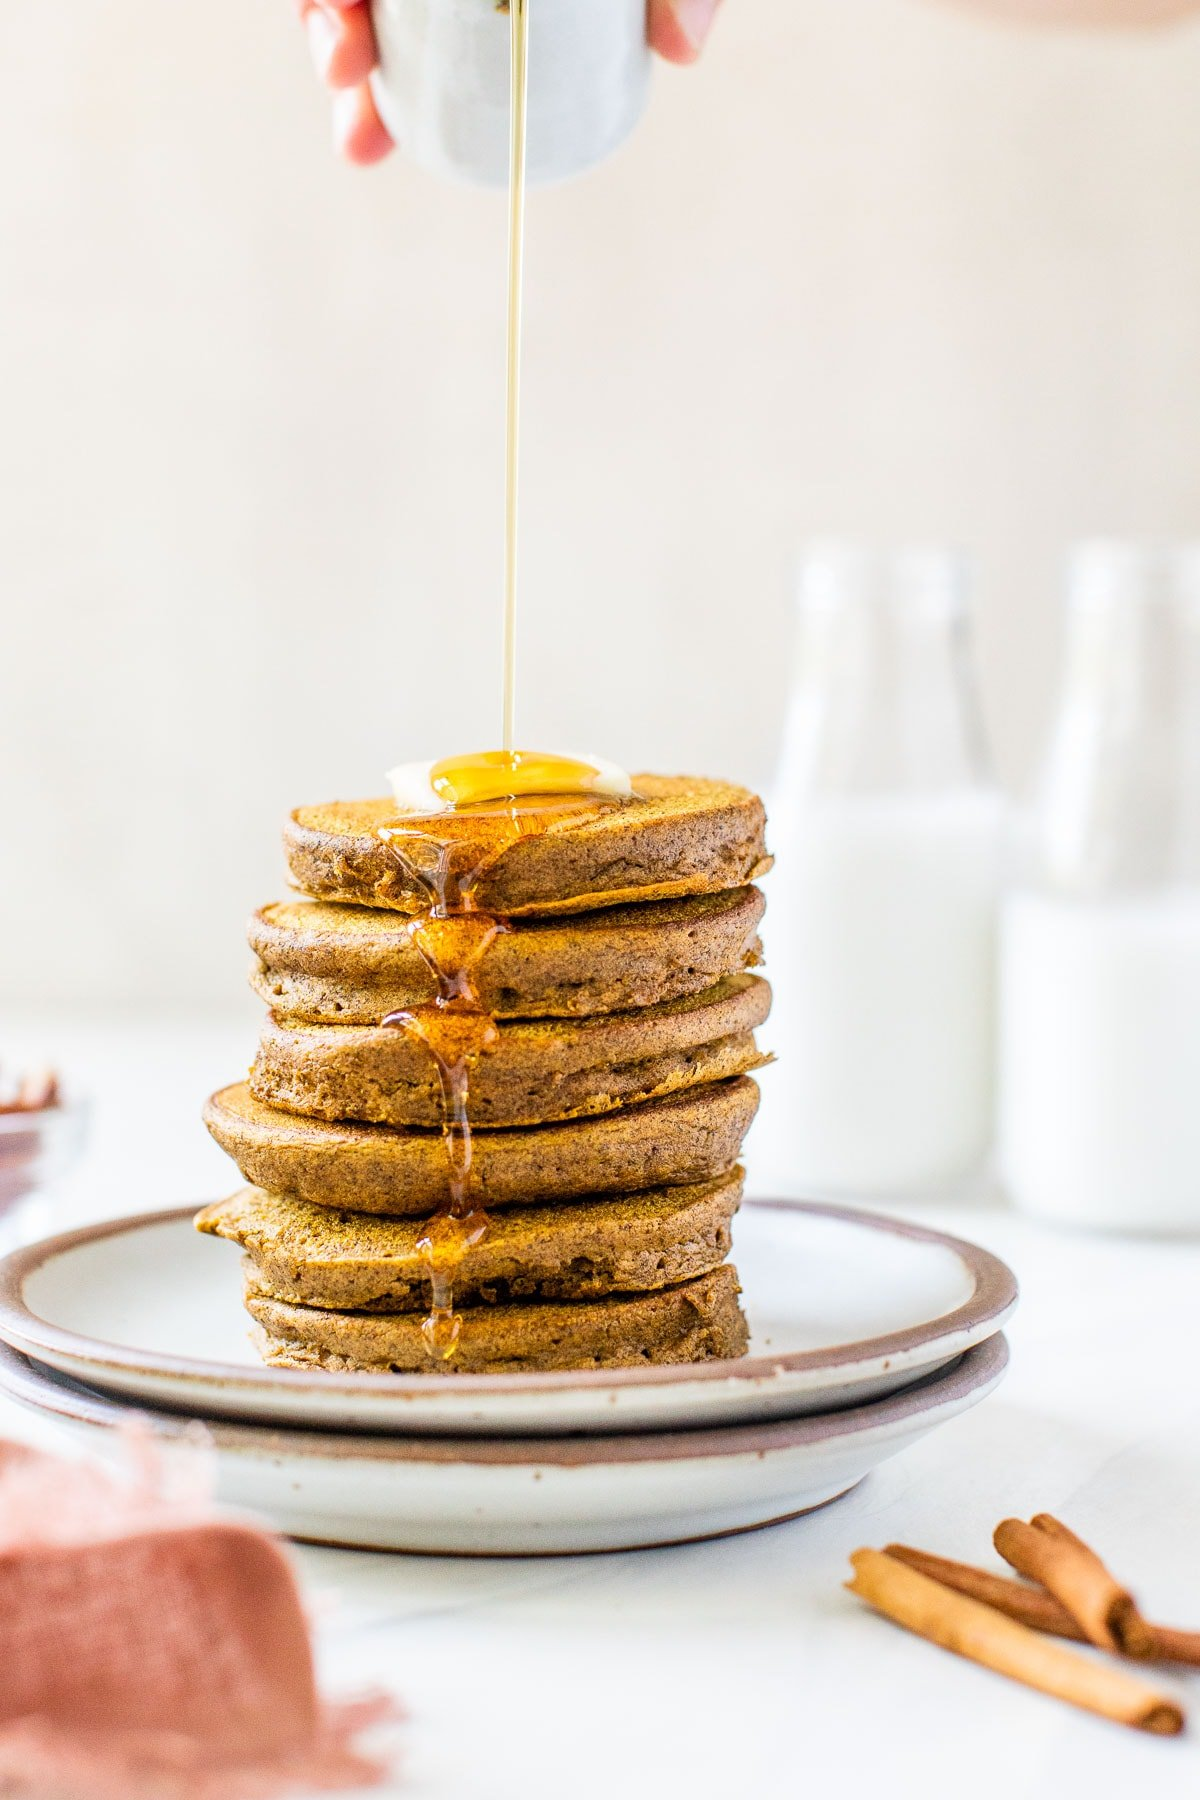 FLUFFY Healthy Pumpkin Pancakes, made EASY in the blender with buckwheat flour and loads of spices! Gluten free, kid-friendly, and no clean up. @wellplated